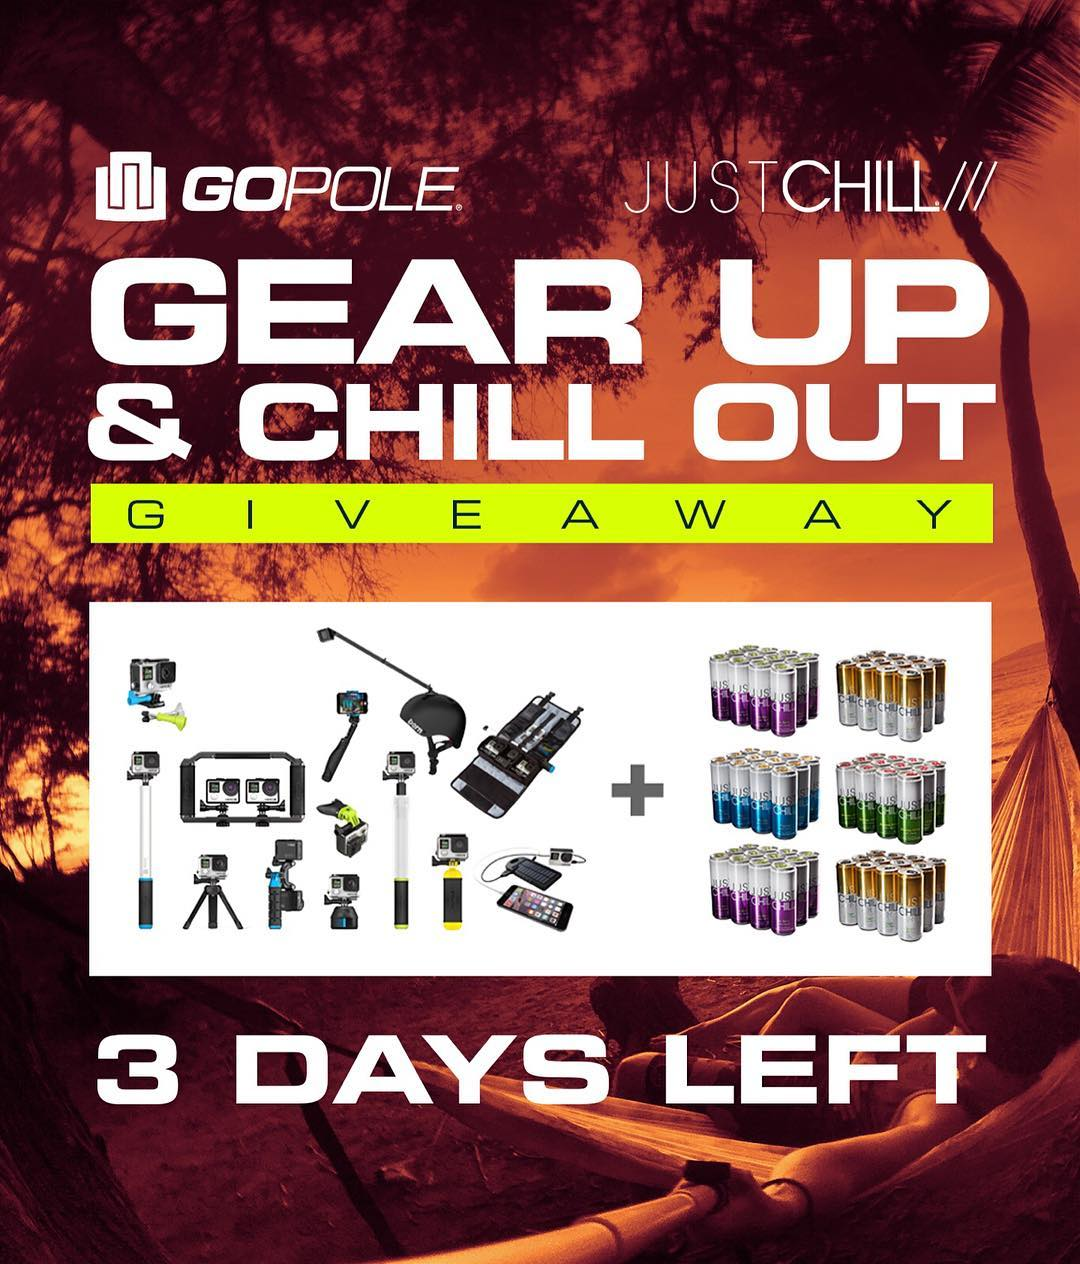 3 days left to Gear Up & Chill Out! Enter now by clicking the link in our bio. @justchill #gopole #thepowerofcalm #gearupchillout